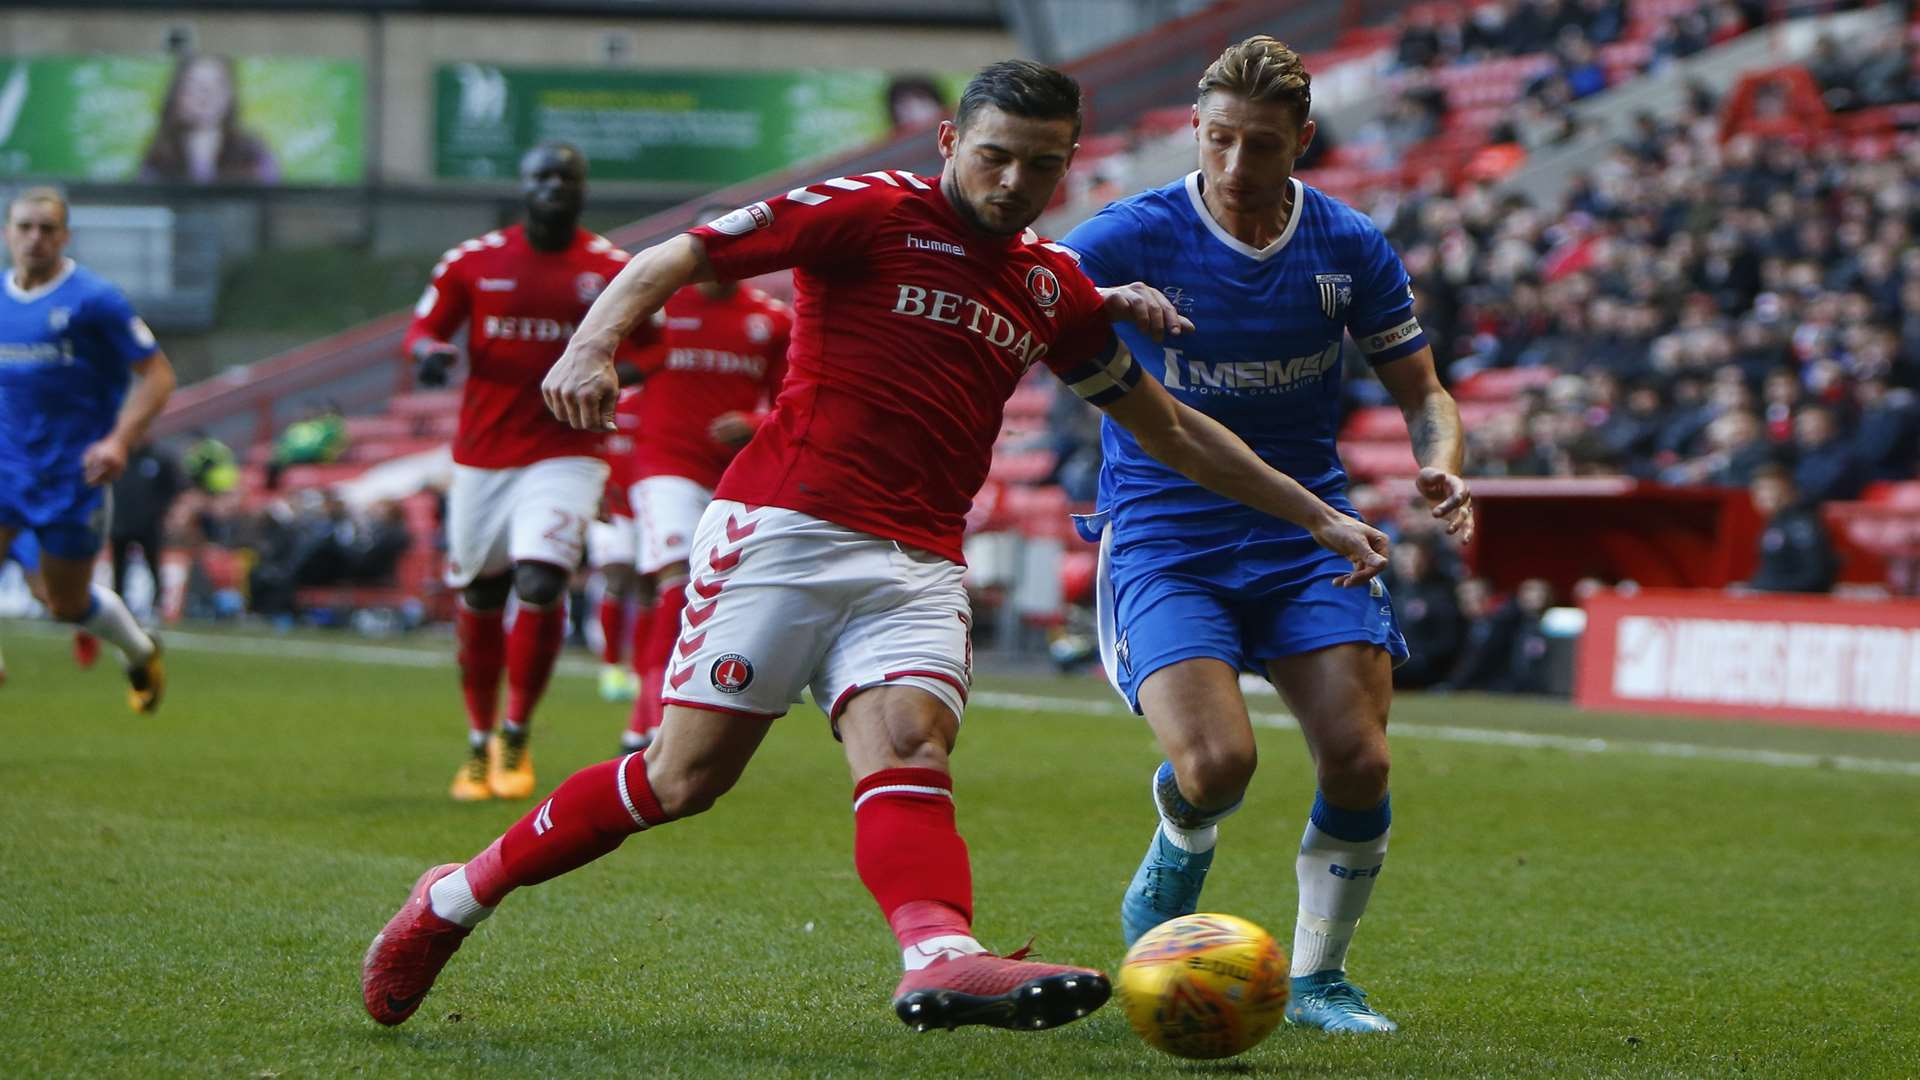 Gills skipper Lee Martin takes on Charlton's Jake Forster-Caskey Picture: Andy Jones